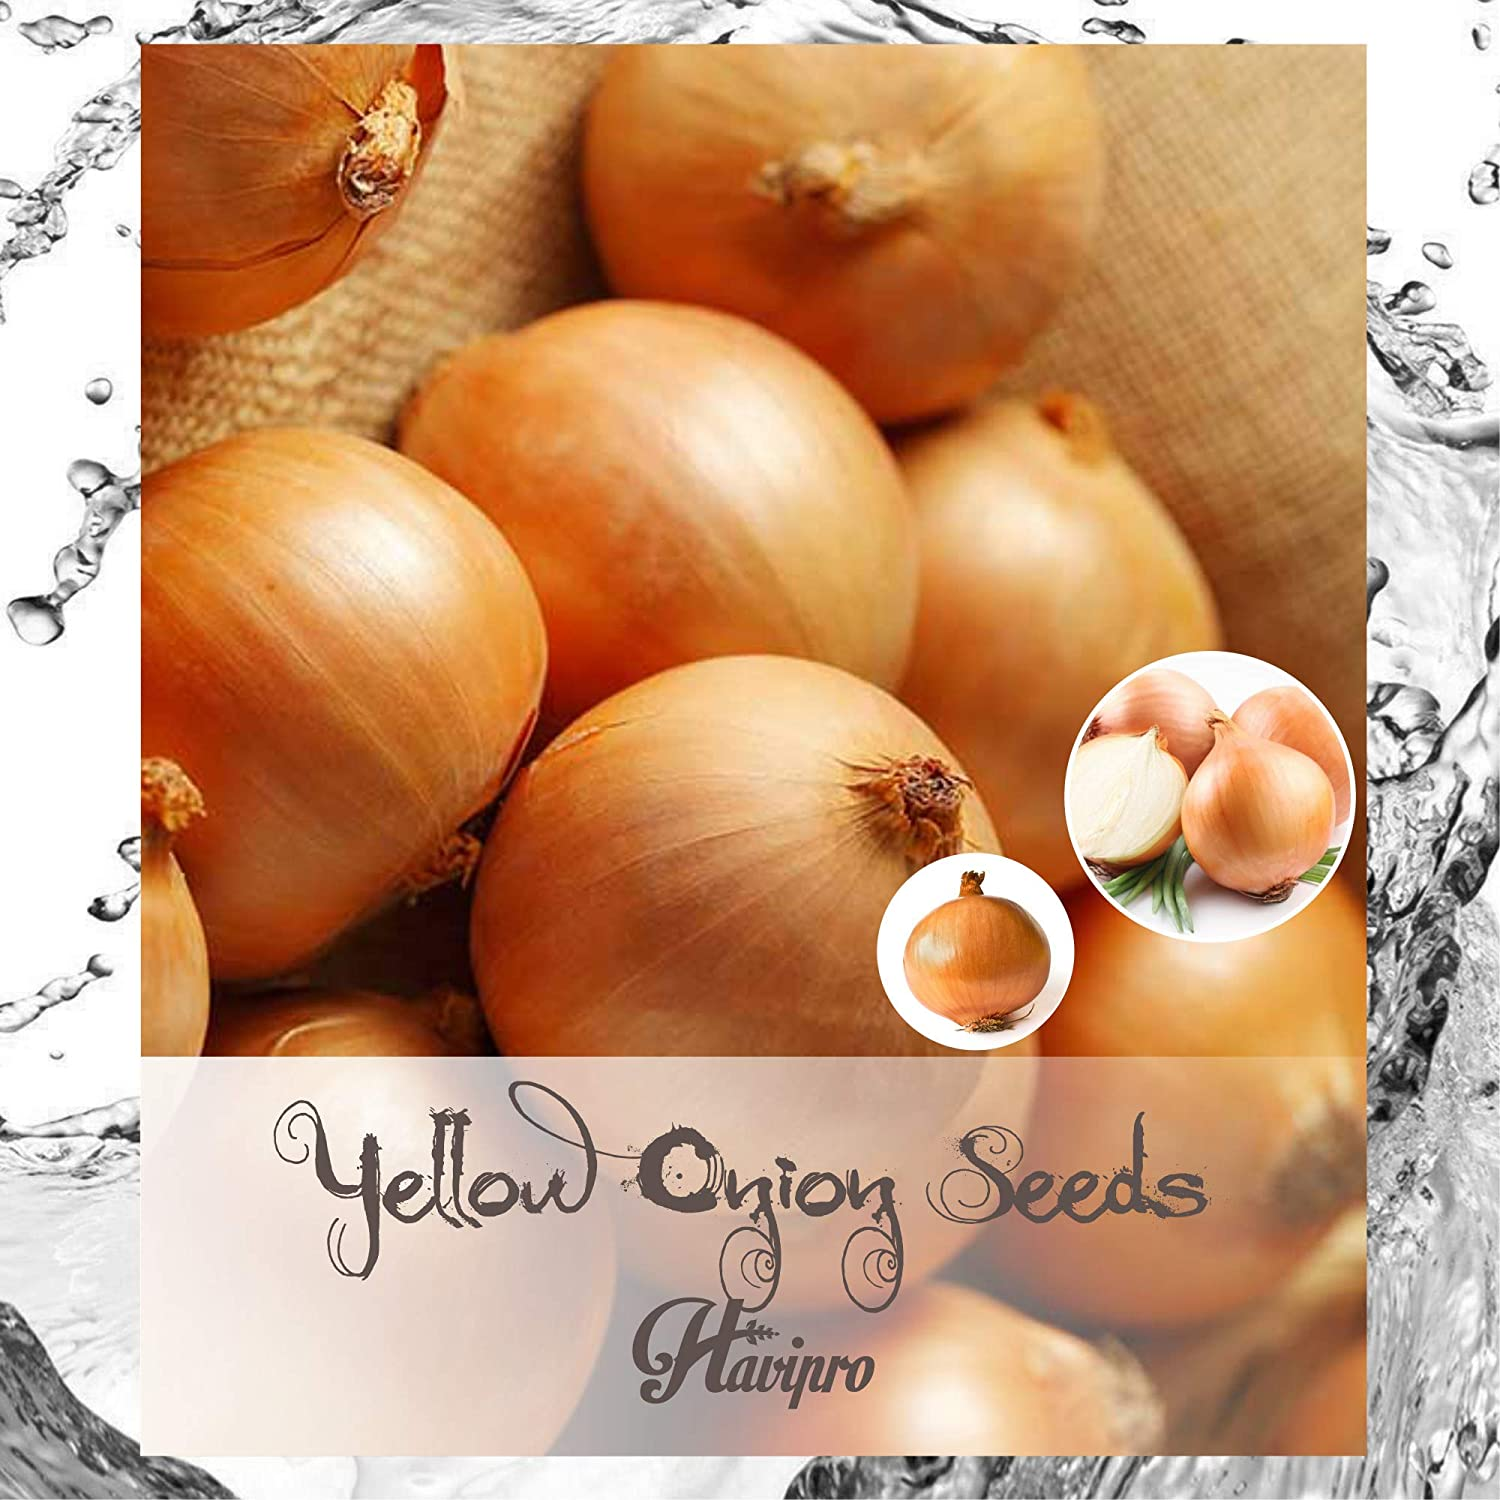 by HAVIPRO Organic Sweet Yellow Onion Seeds for Planting 100 Short Day Onion Seeds Non GMO High Germination Rate Delicious